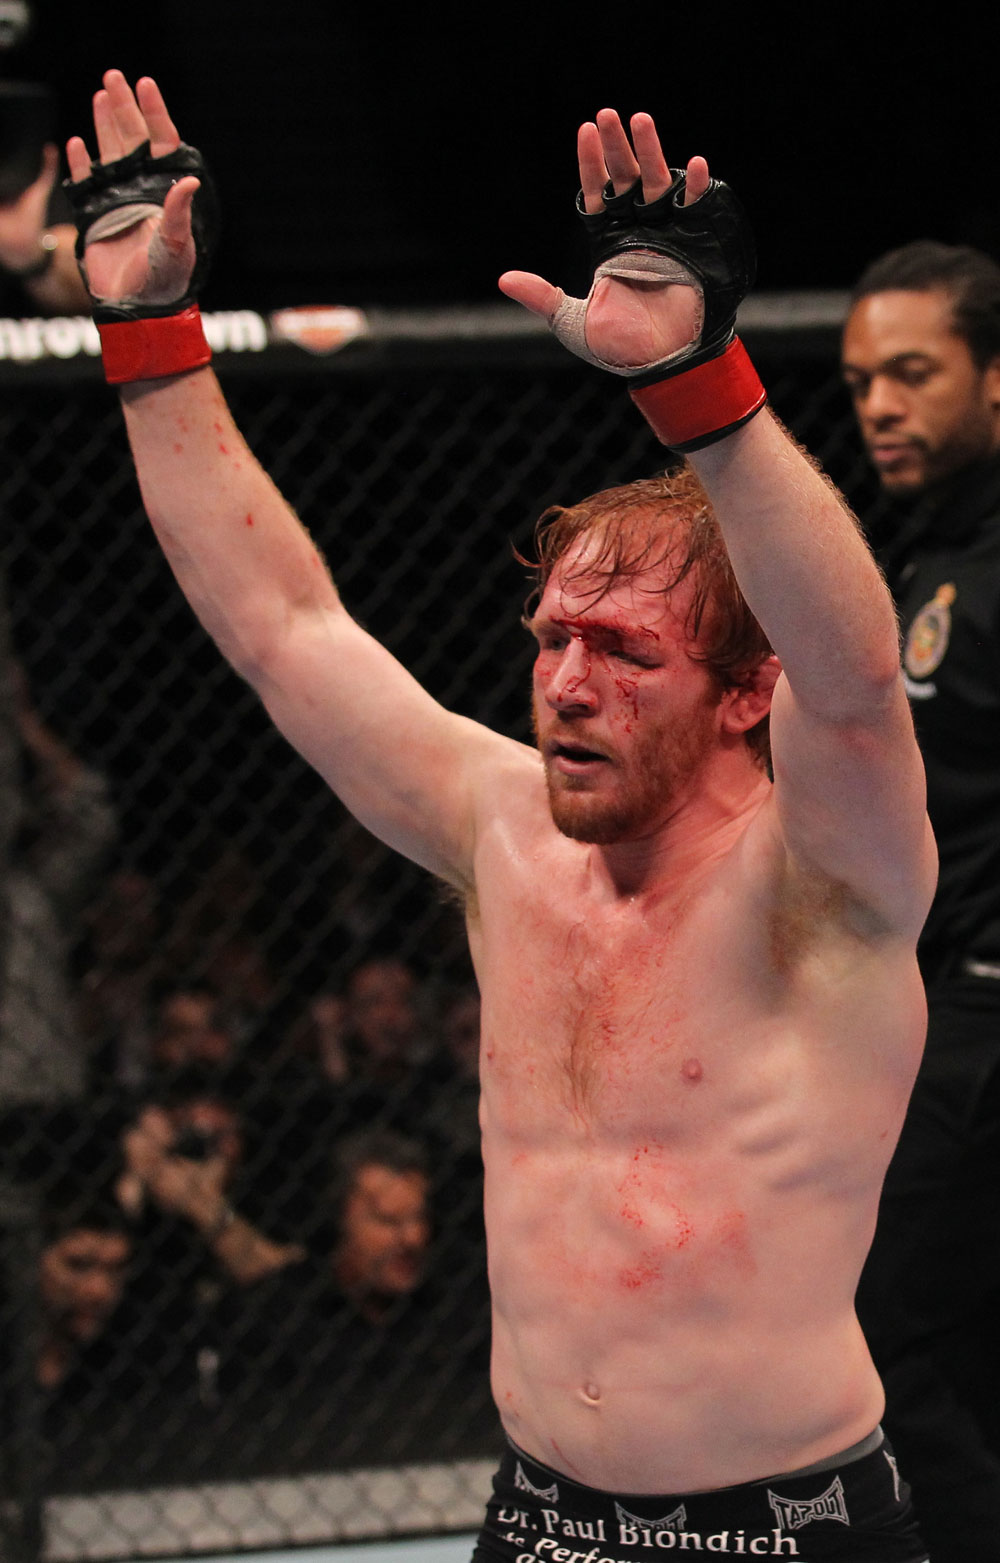 TORONTO, ON - DECEMBER 10:  Mark Bocek reacts after his decision victory over Nik Lentz during the UFC 140 event at Air Canada Centre on December 10, 2011 in Toronto, Ontario, Canada.  (Photo by Nick Laham/Zuffa LLC/Zuffa LLC via Getty Images)